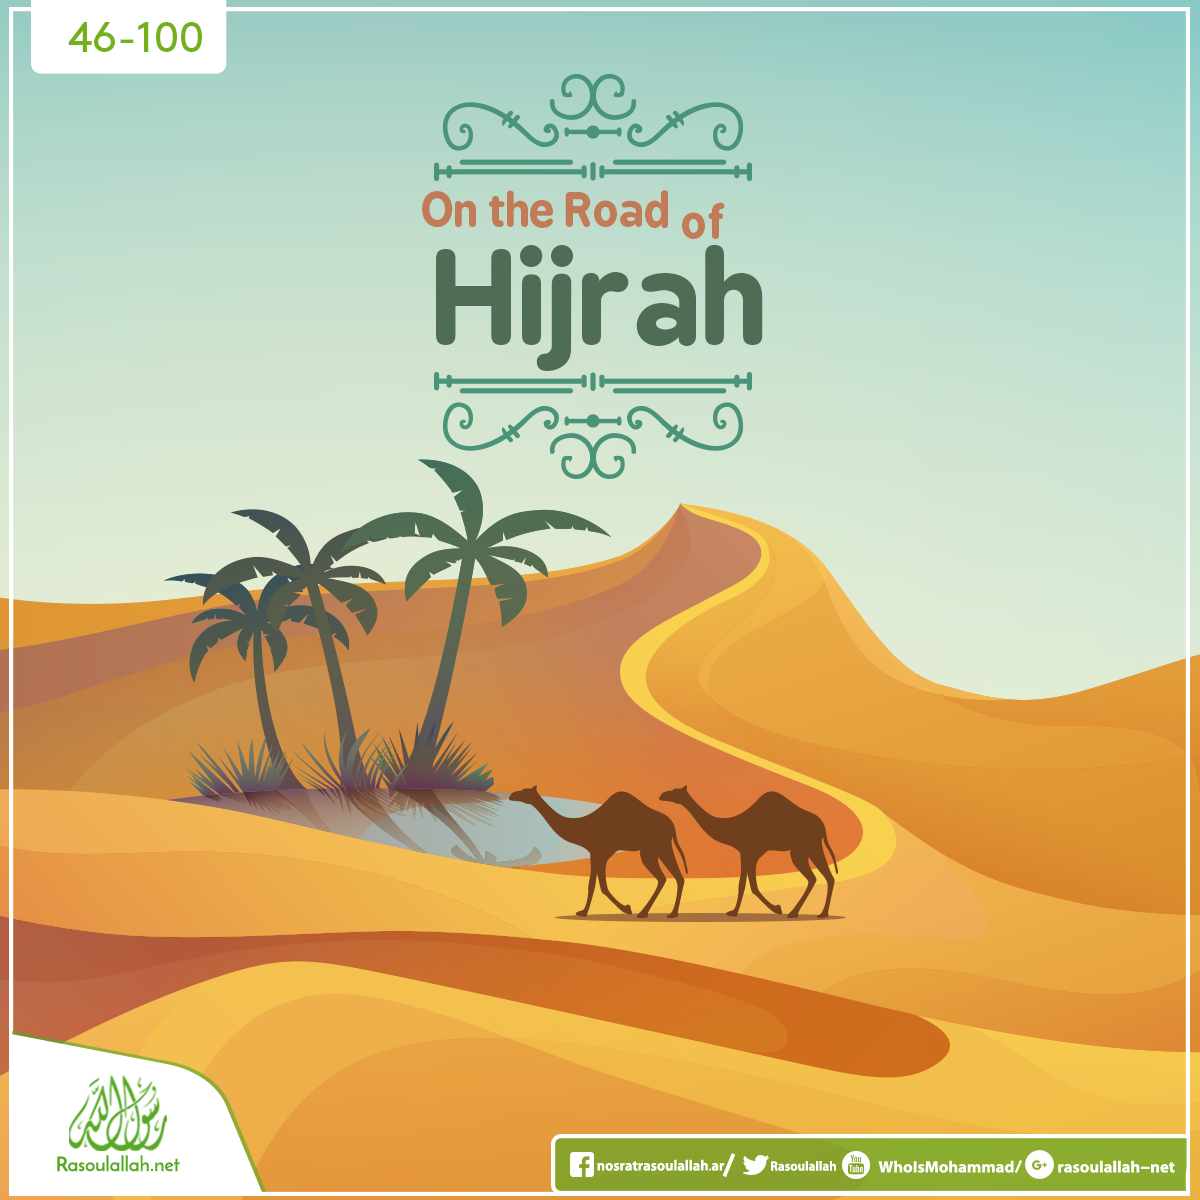 On the Road of Hijrah